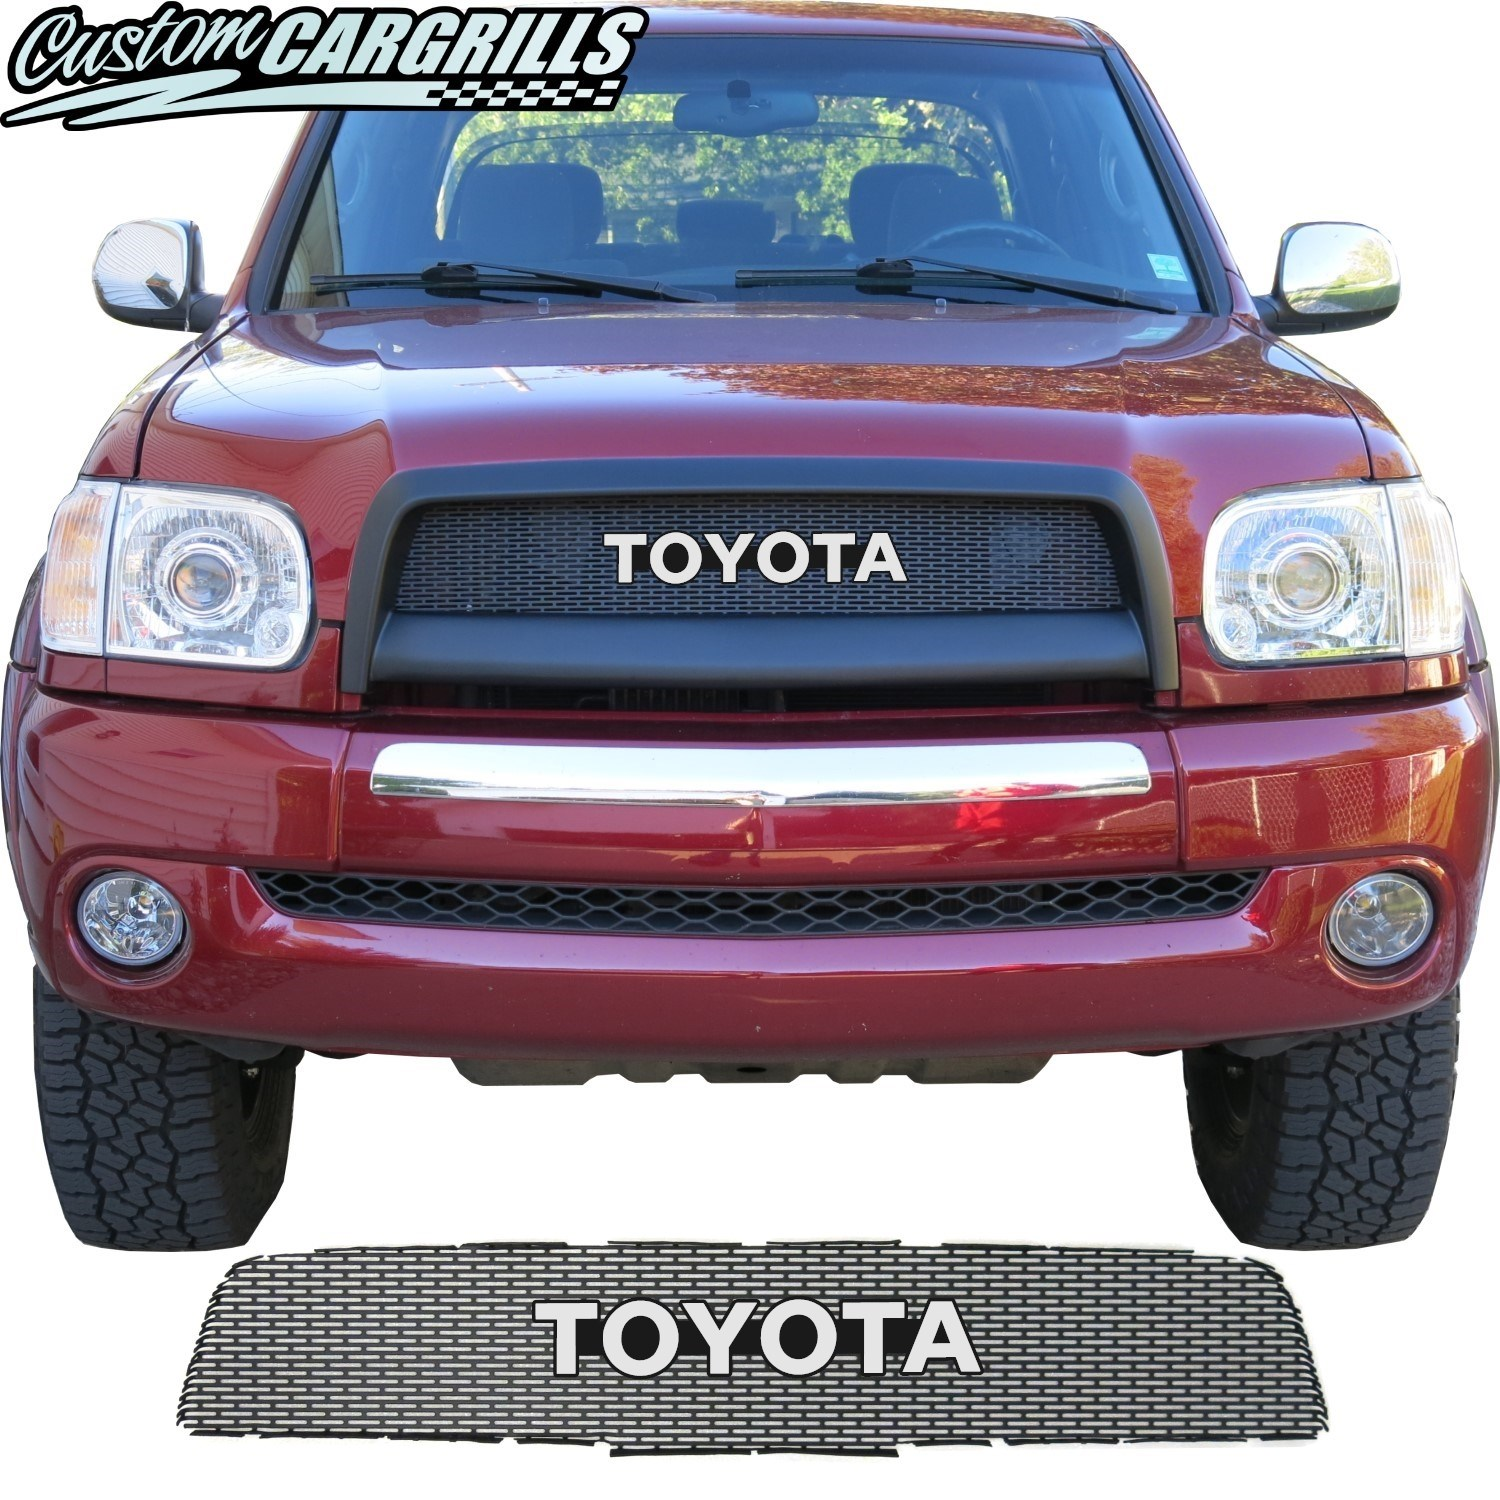 2003-06 Toyota Tundra Grill Mesh with Toyota Emblem